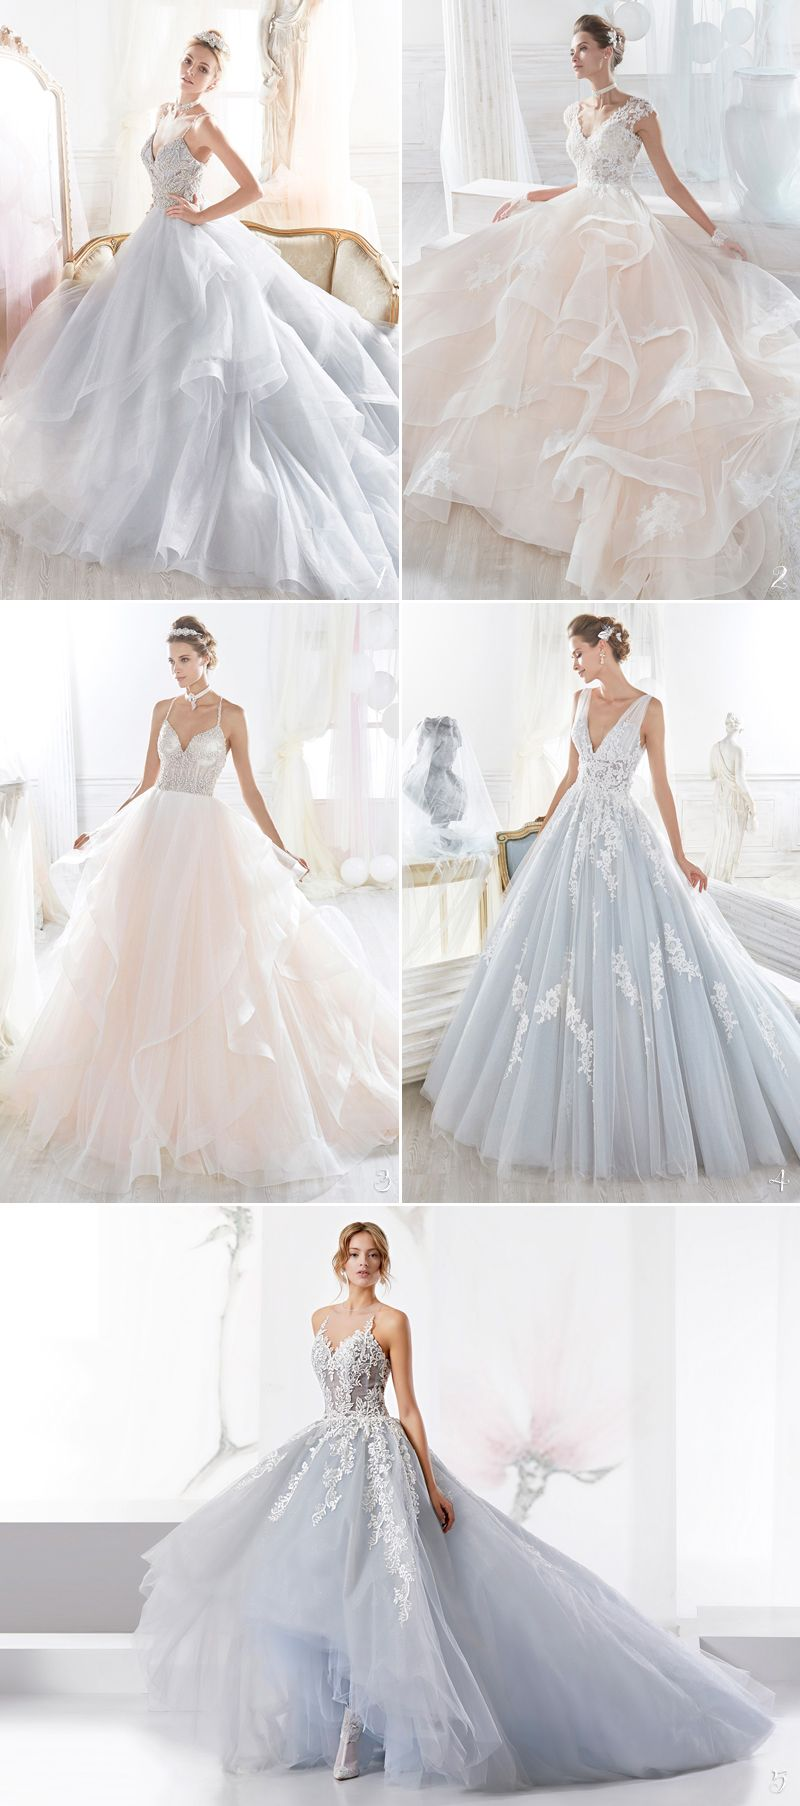 ... Wedding. Formal Dress Clearance Evening Dress Cover Up Jacket. 2018  Revealed! 25 Romantic Ball Gowns That Stole Our Hearts! e85270bbbd2a